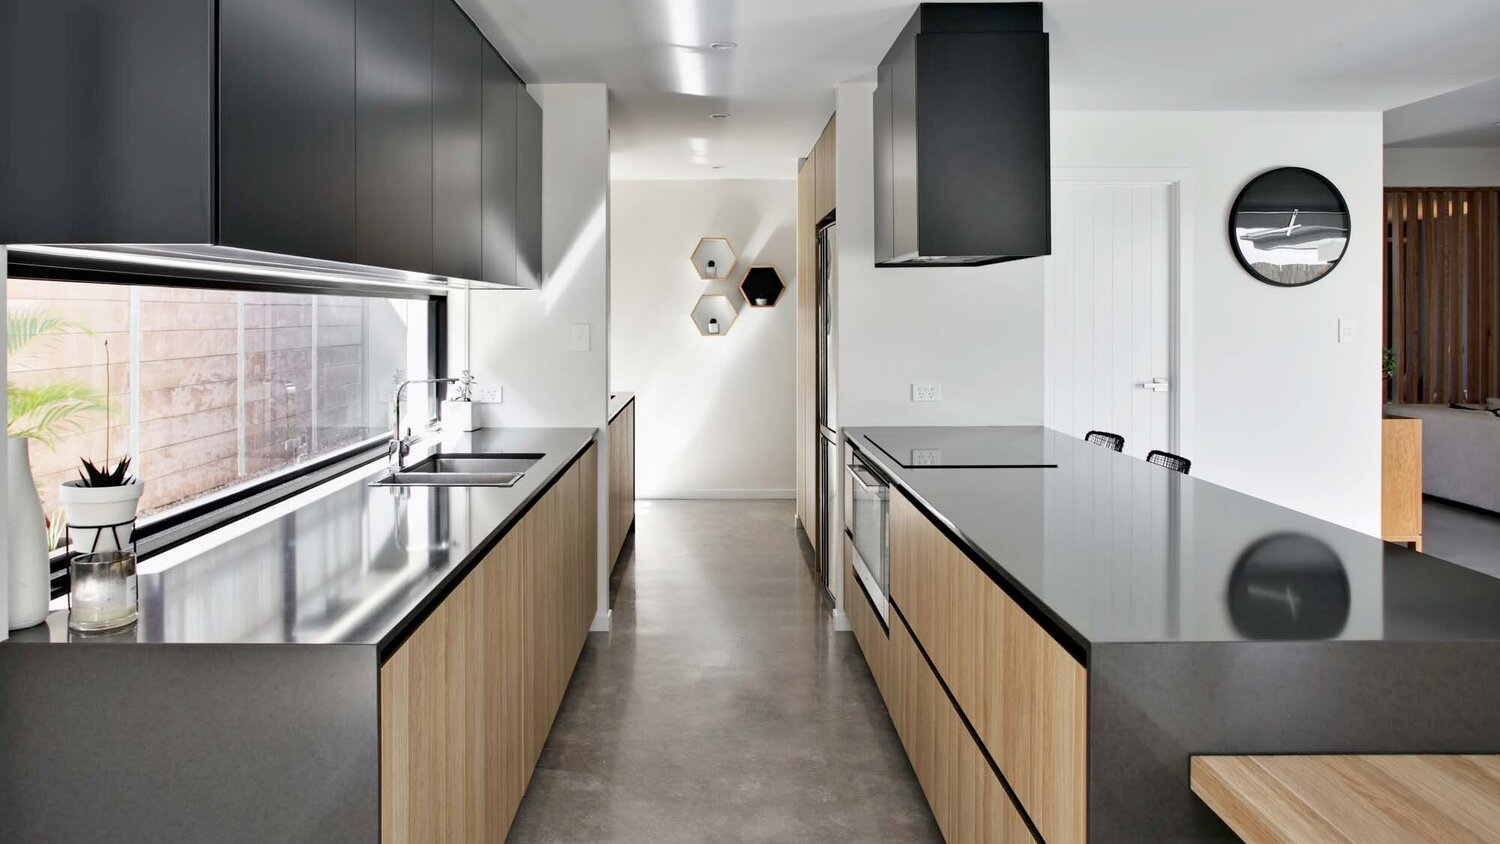 Premium Construction - Laminex - Australian made 16mm High Moisture Resistant Particle board made in WA, our cabinets also include soft closing hardware as standard.You are guaranteed a product that out performs others in the market.Be confident that your kitchen will be able to last the test of time under the day to day use of a busy family.